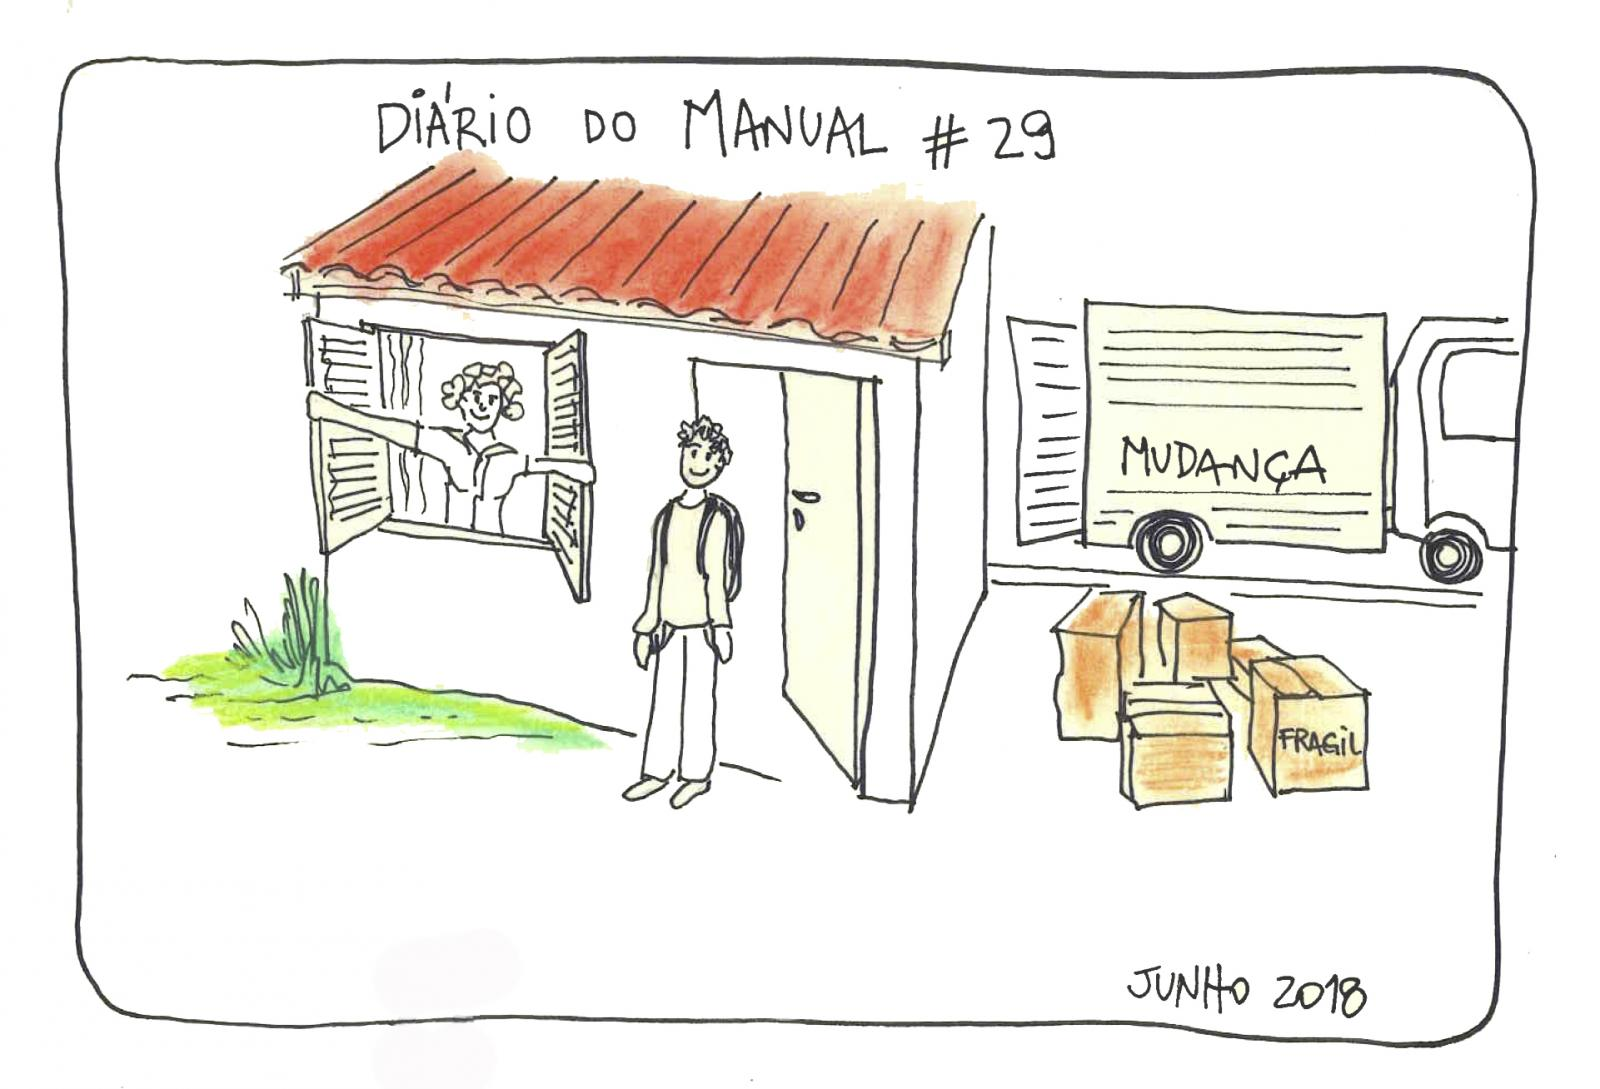 Diário do Manual #29